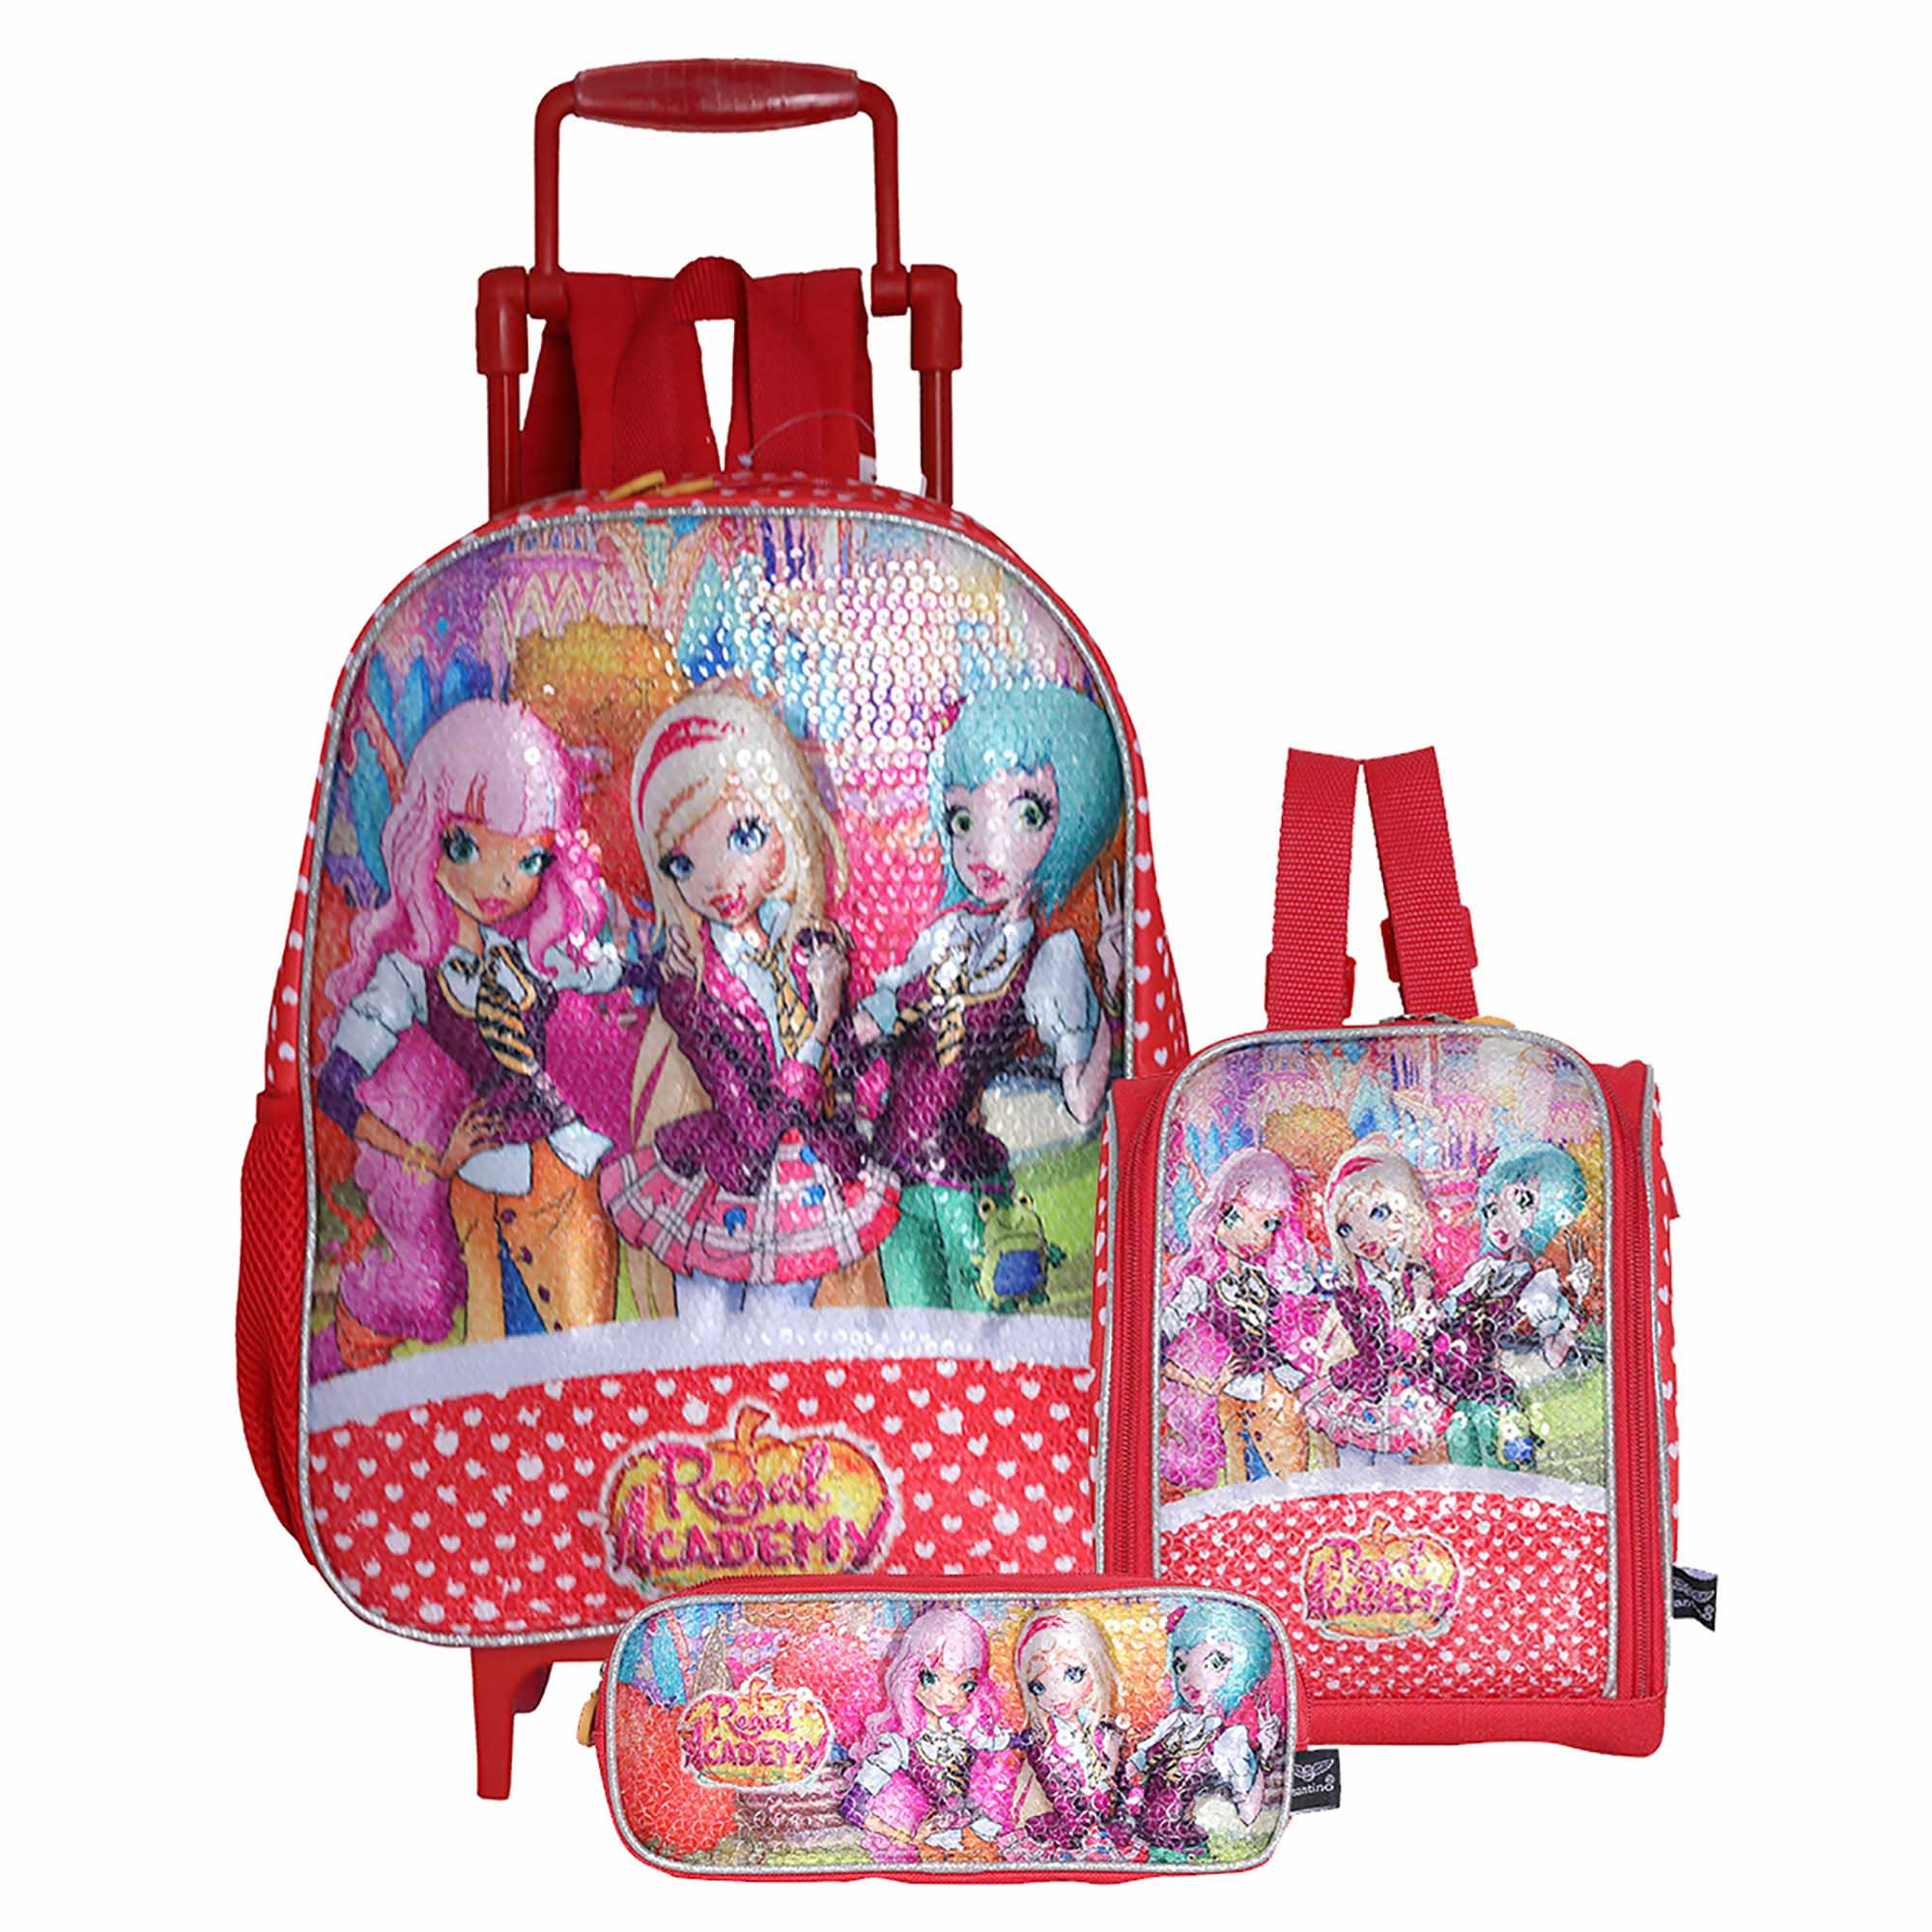 KIT MOCHILA PINK POL REGAL ACAD - RAK1U47